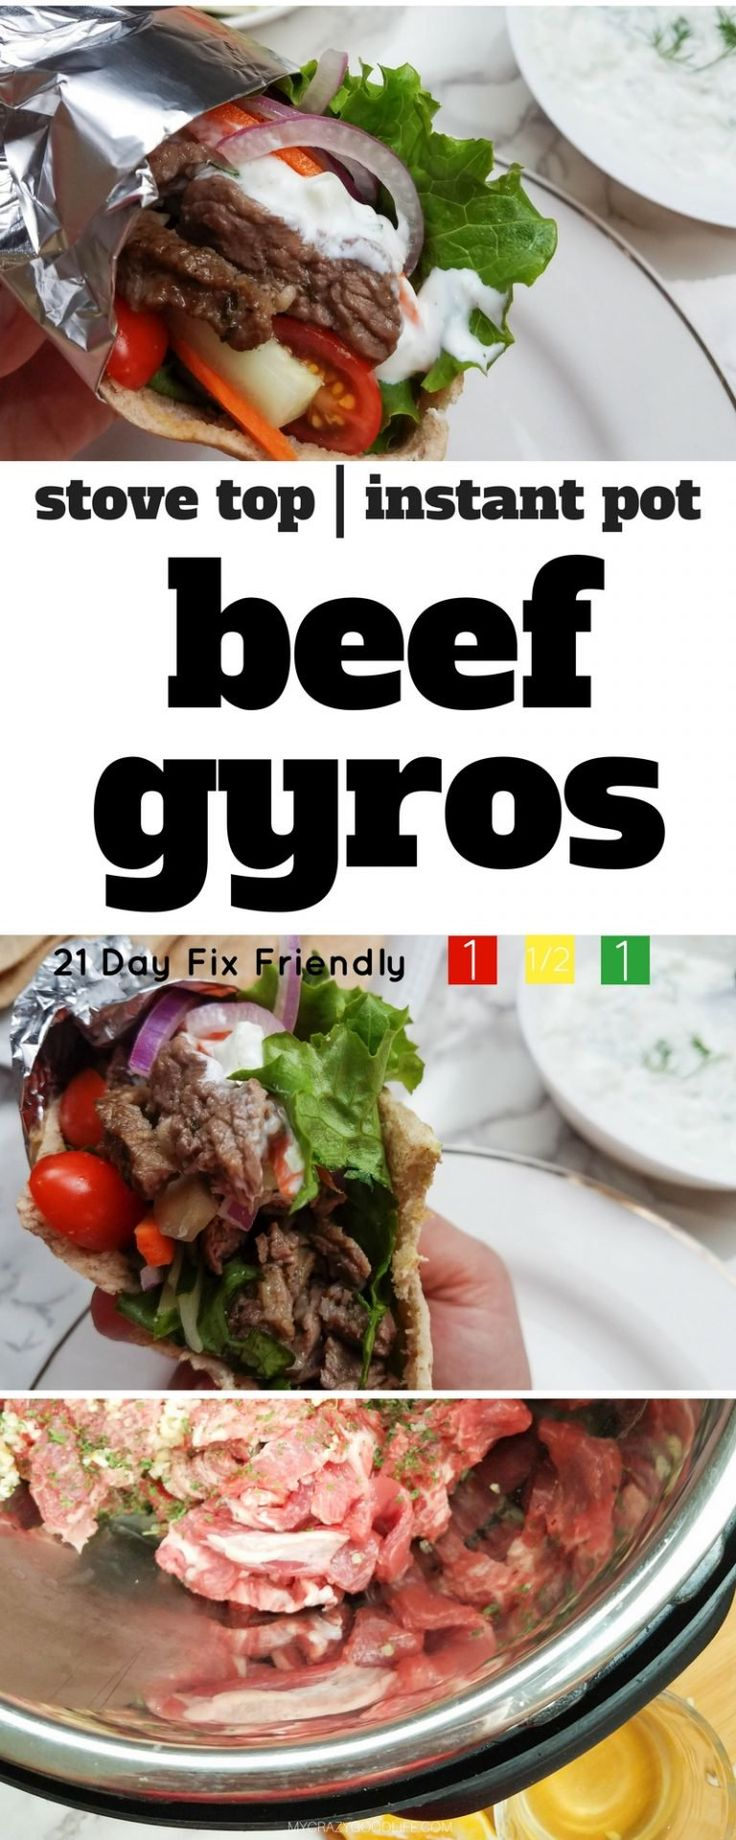 These Instant Pot Beef Gyros (can be made on stove too!) are a quick meal filled with clean ingredients and veggies–and they're 21 Day Fix friendly! | 21 Day Fix Instant Pot Beef Gyros | Instant Pot Dinner Recipe | 21 Day Fix Dinner Recipe | 21 Day Fix Gryos